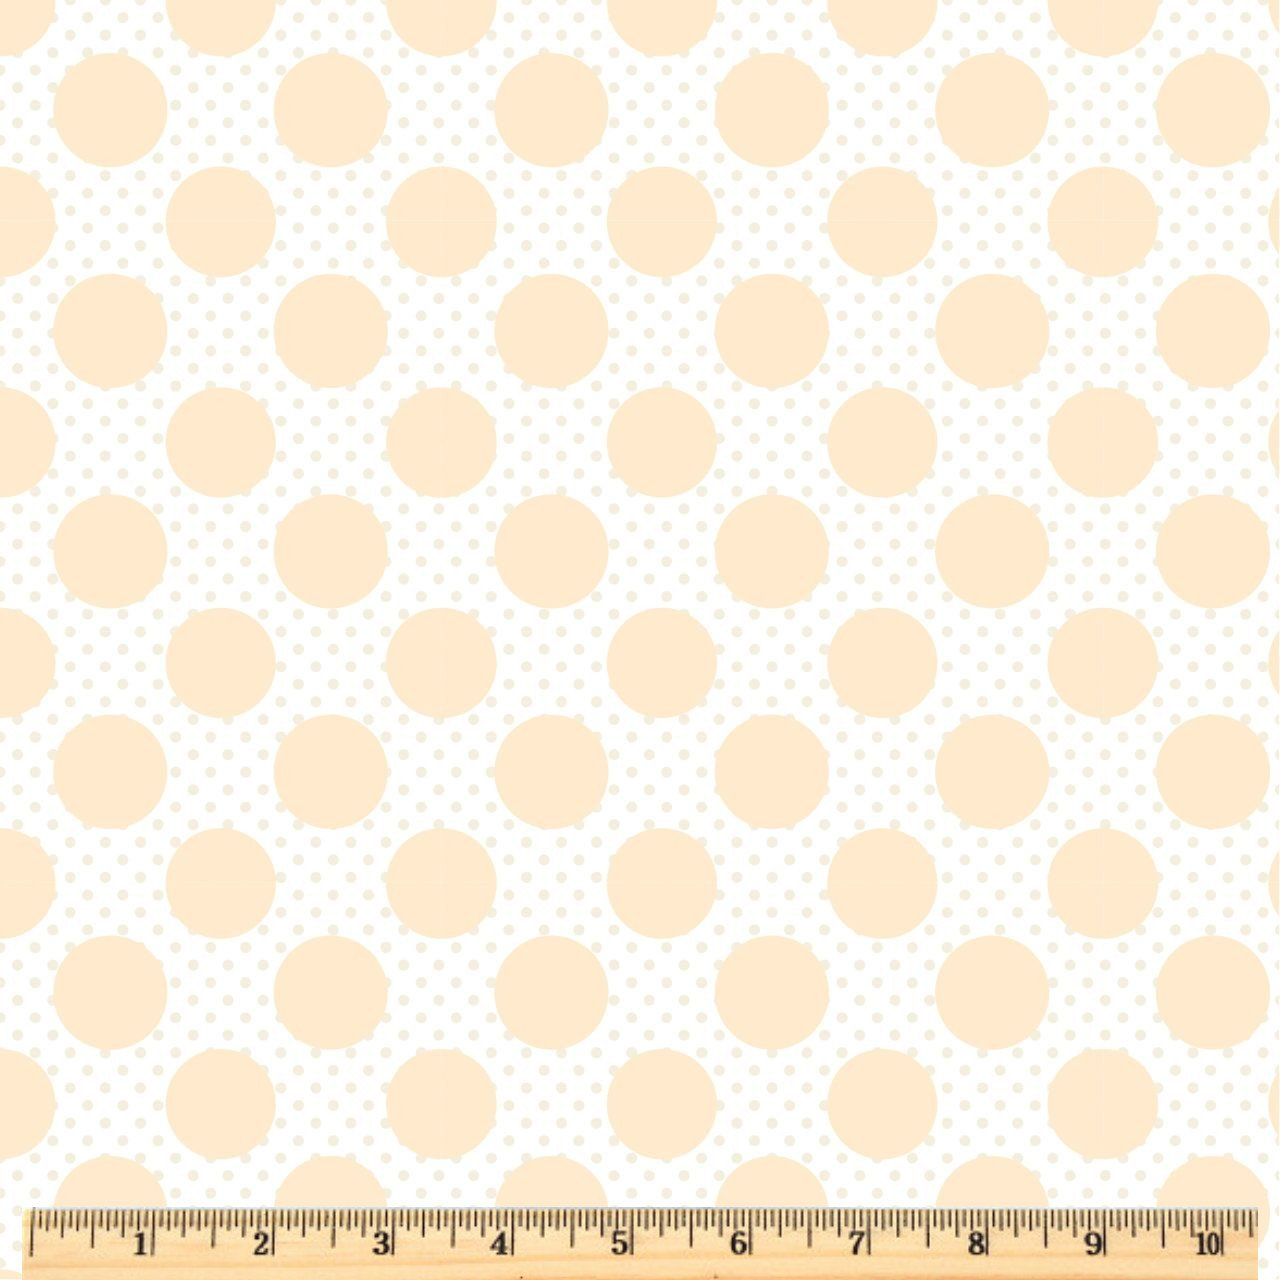 Dots & Posies - Dots on Dots - White